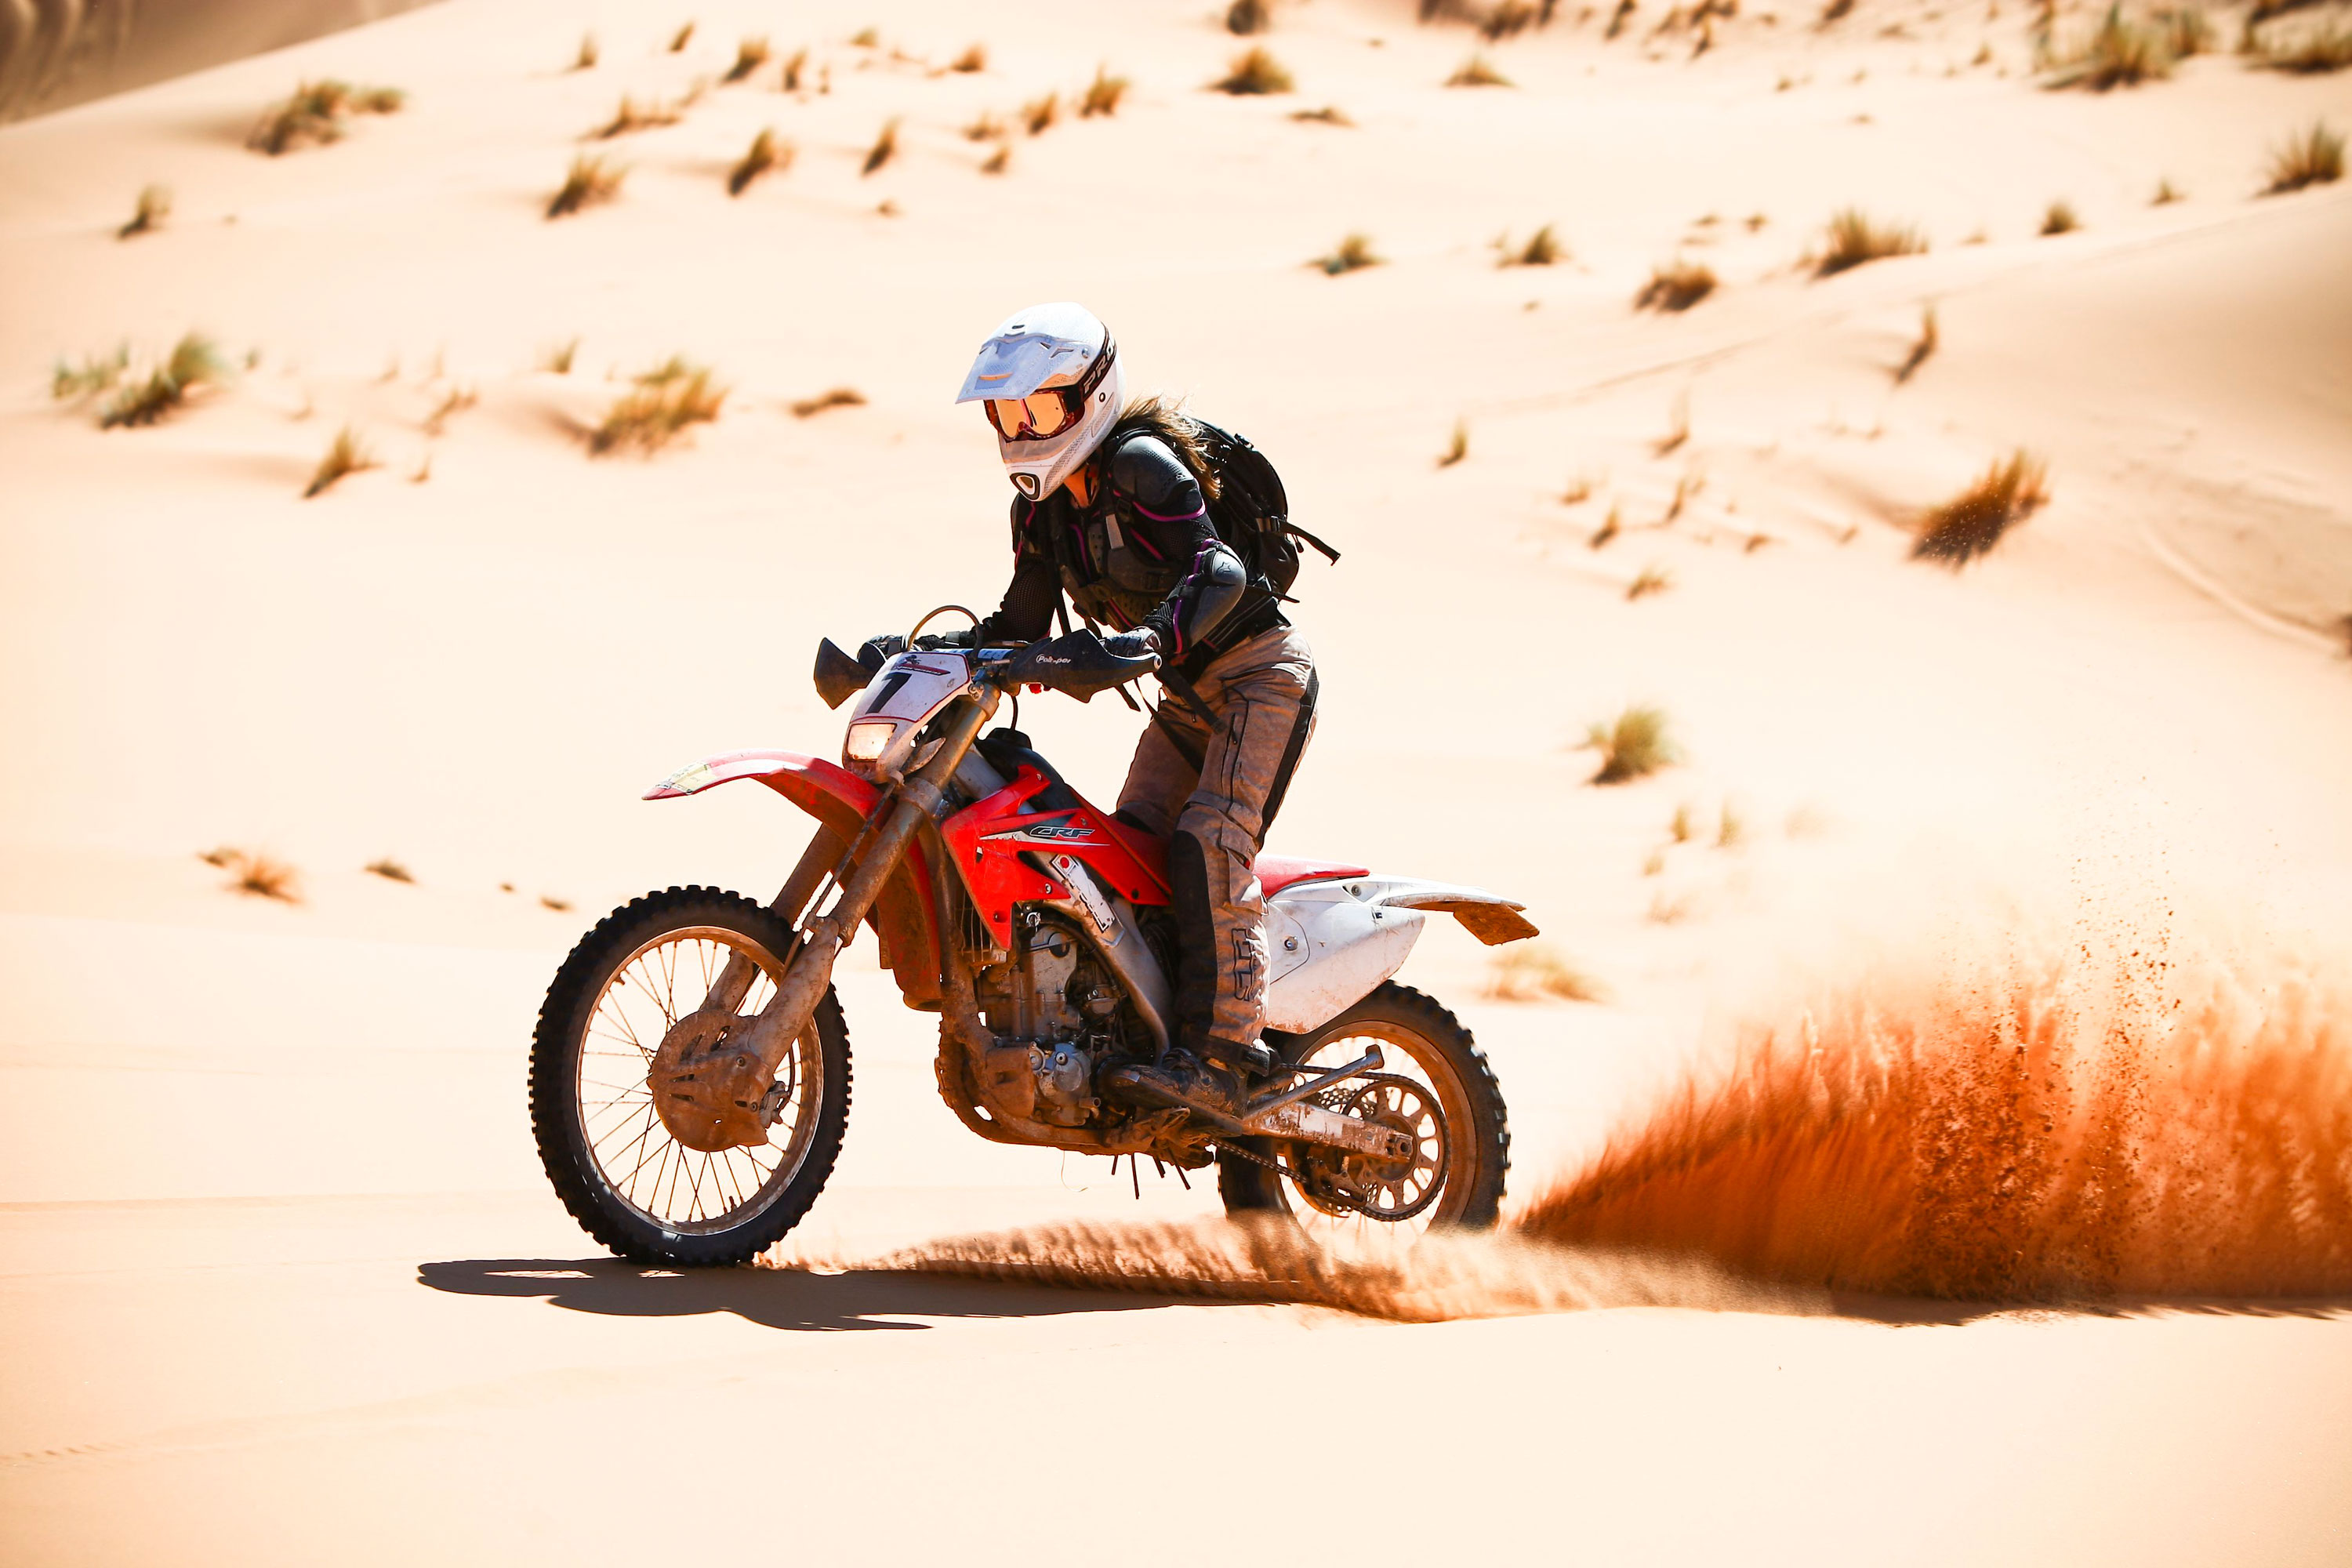 Steph Jeavons riding motorcycle in the desert